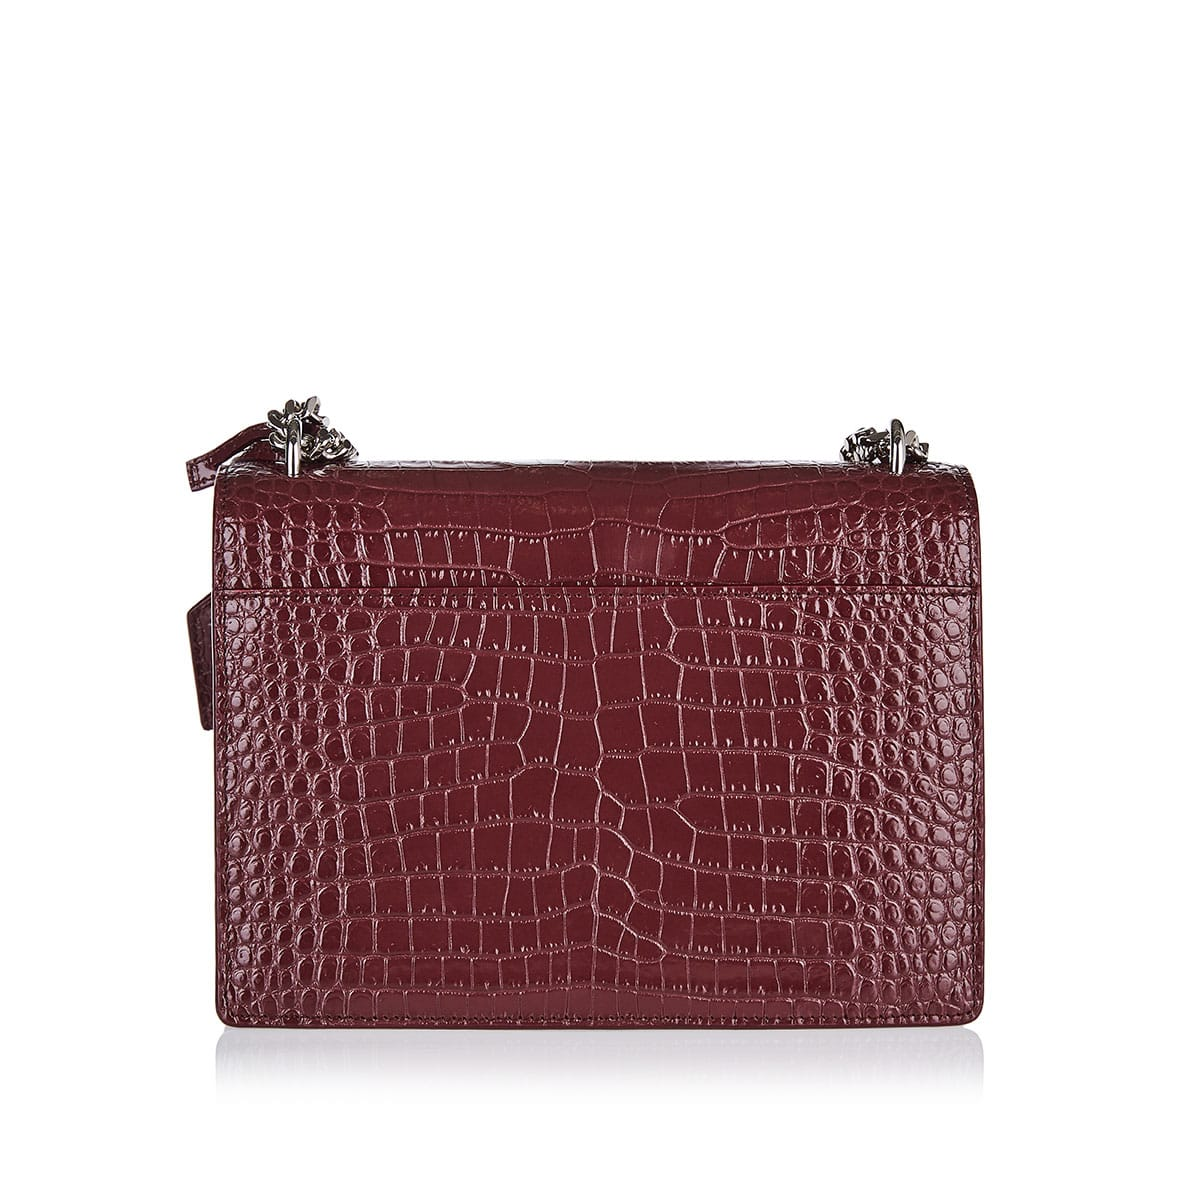 Medium Sunset bag in croc-effect leather